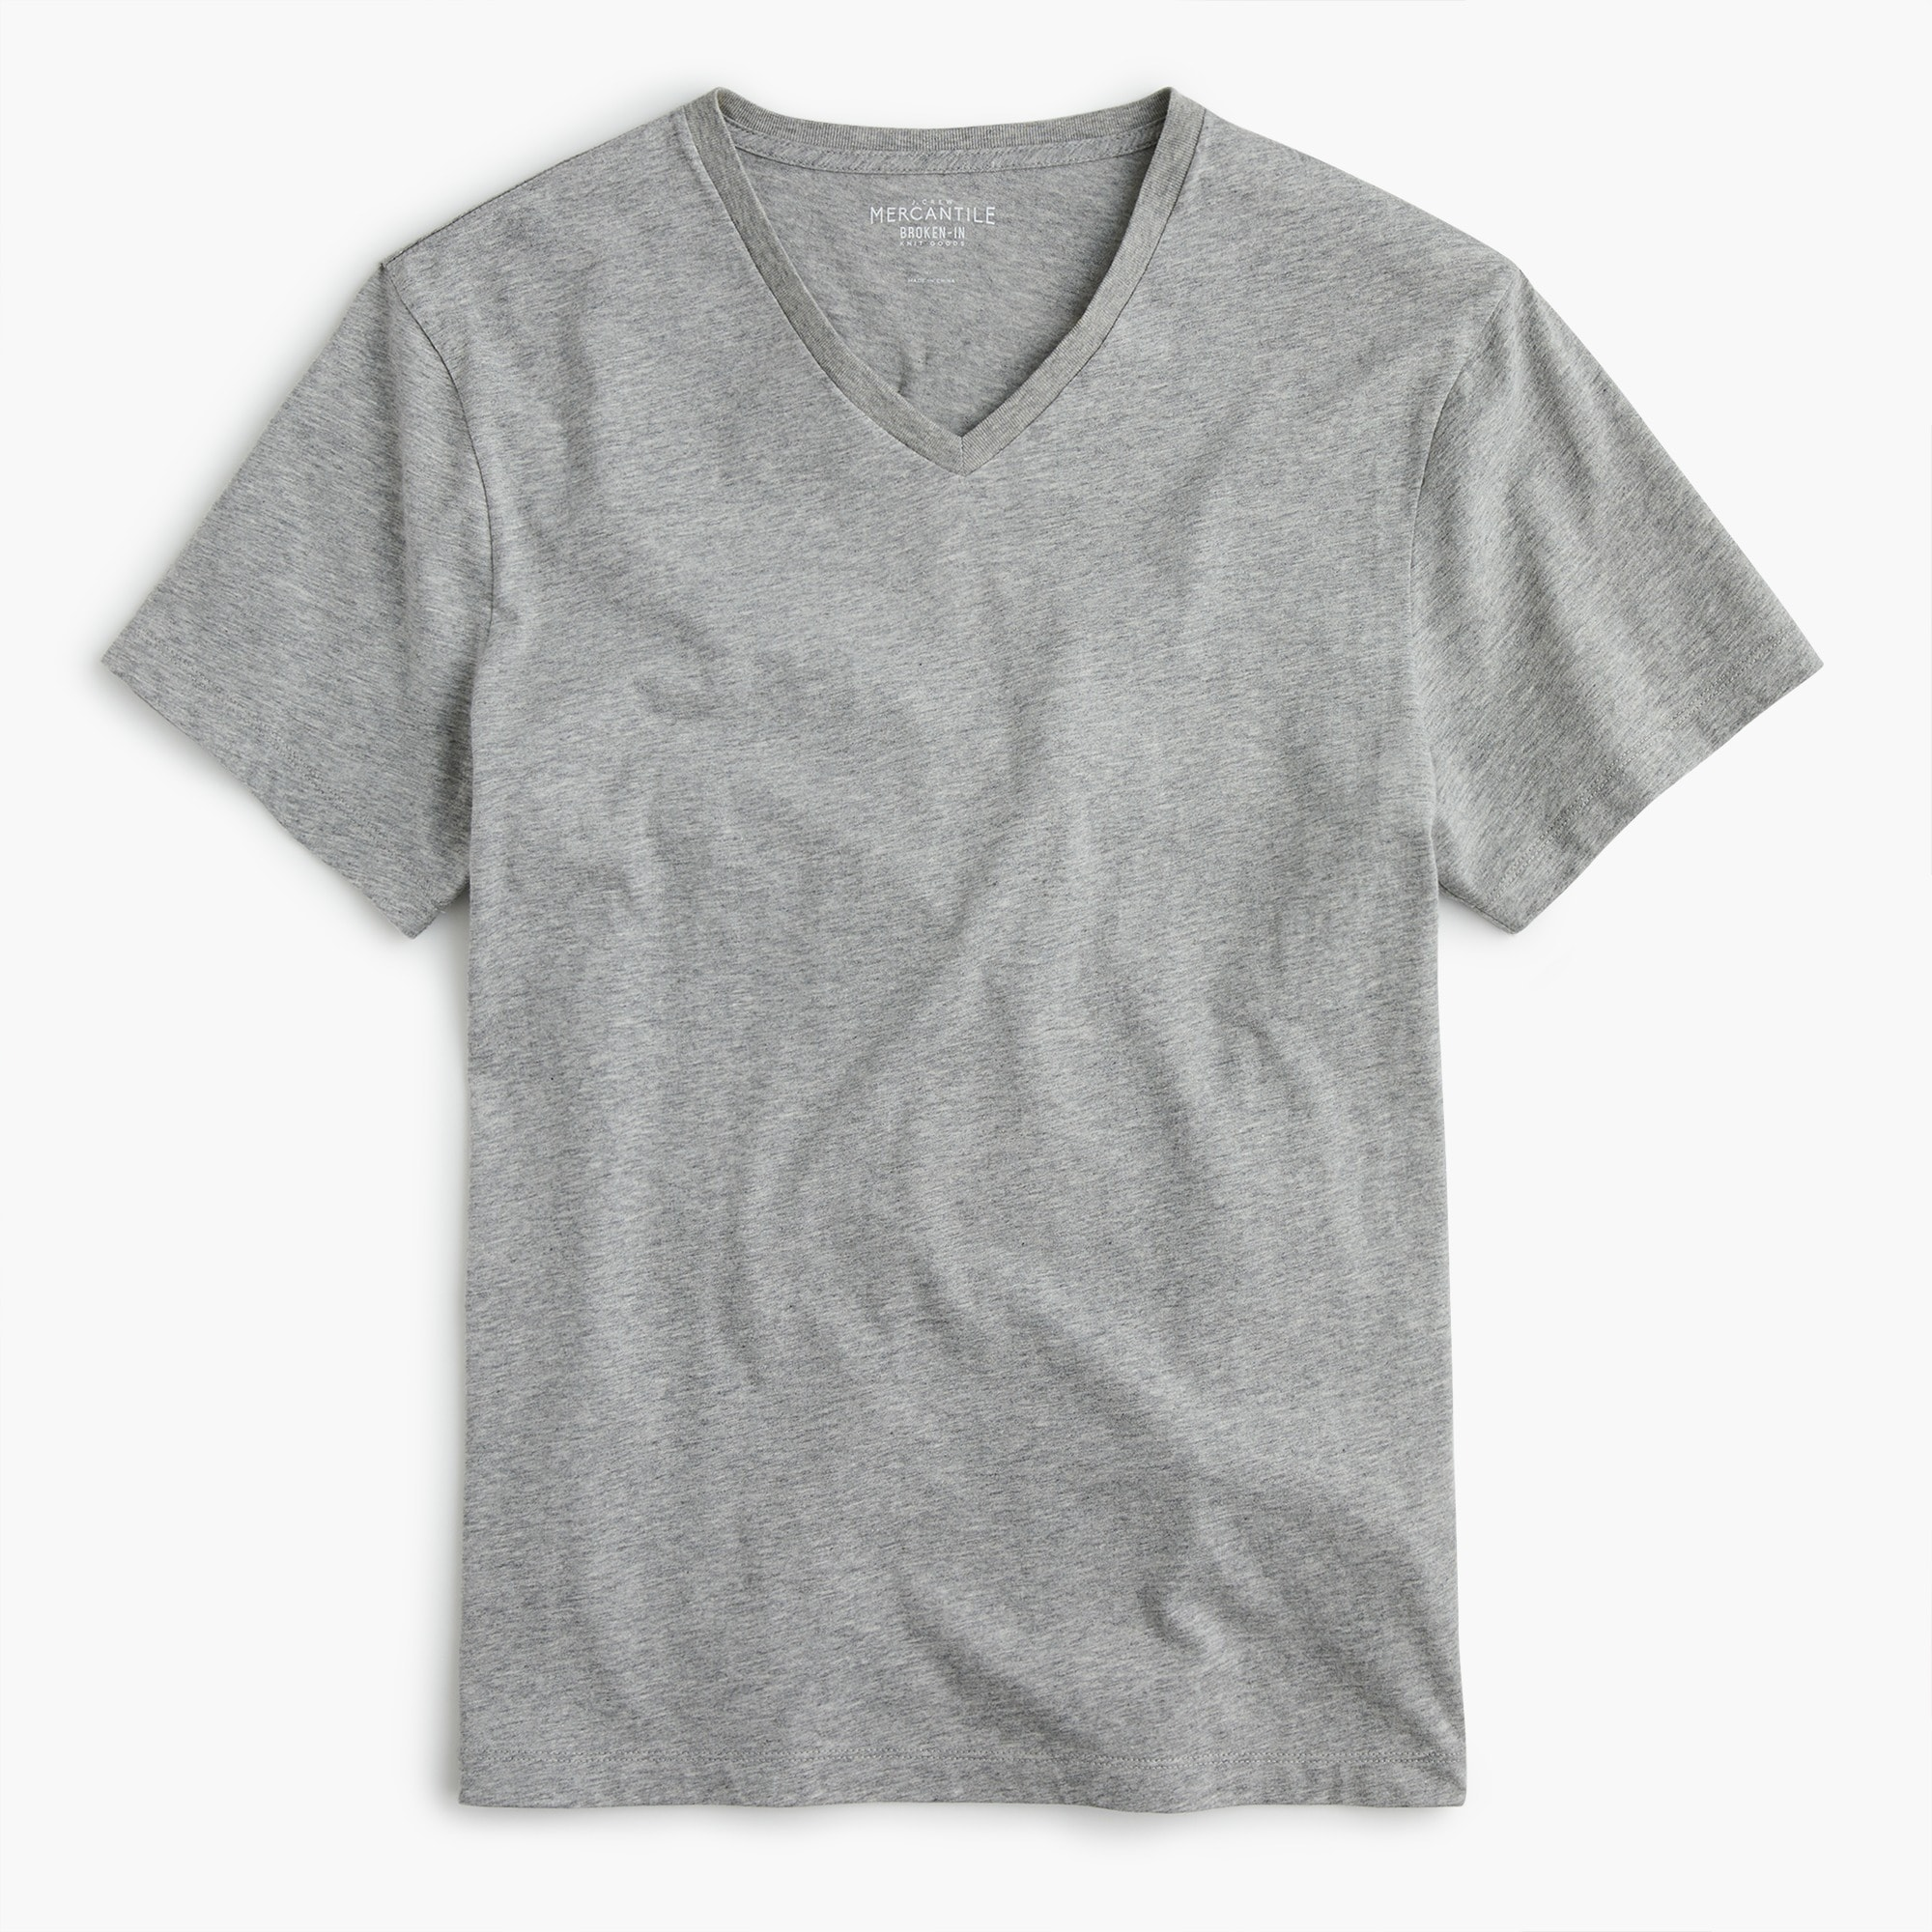 J.Crew Mercantile Broken-in V-neck T-shirt in heather grey men t-shirts & polos c